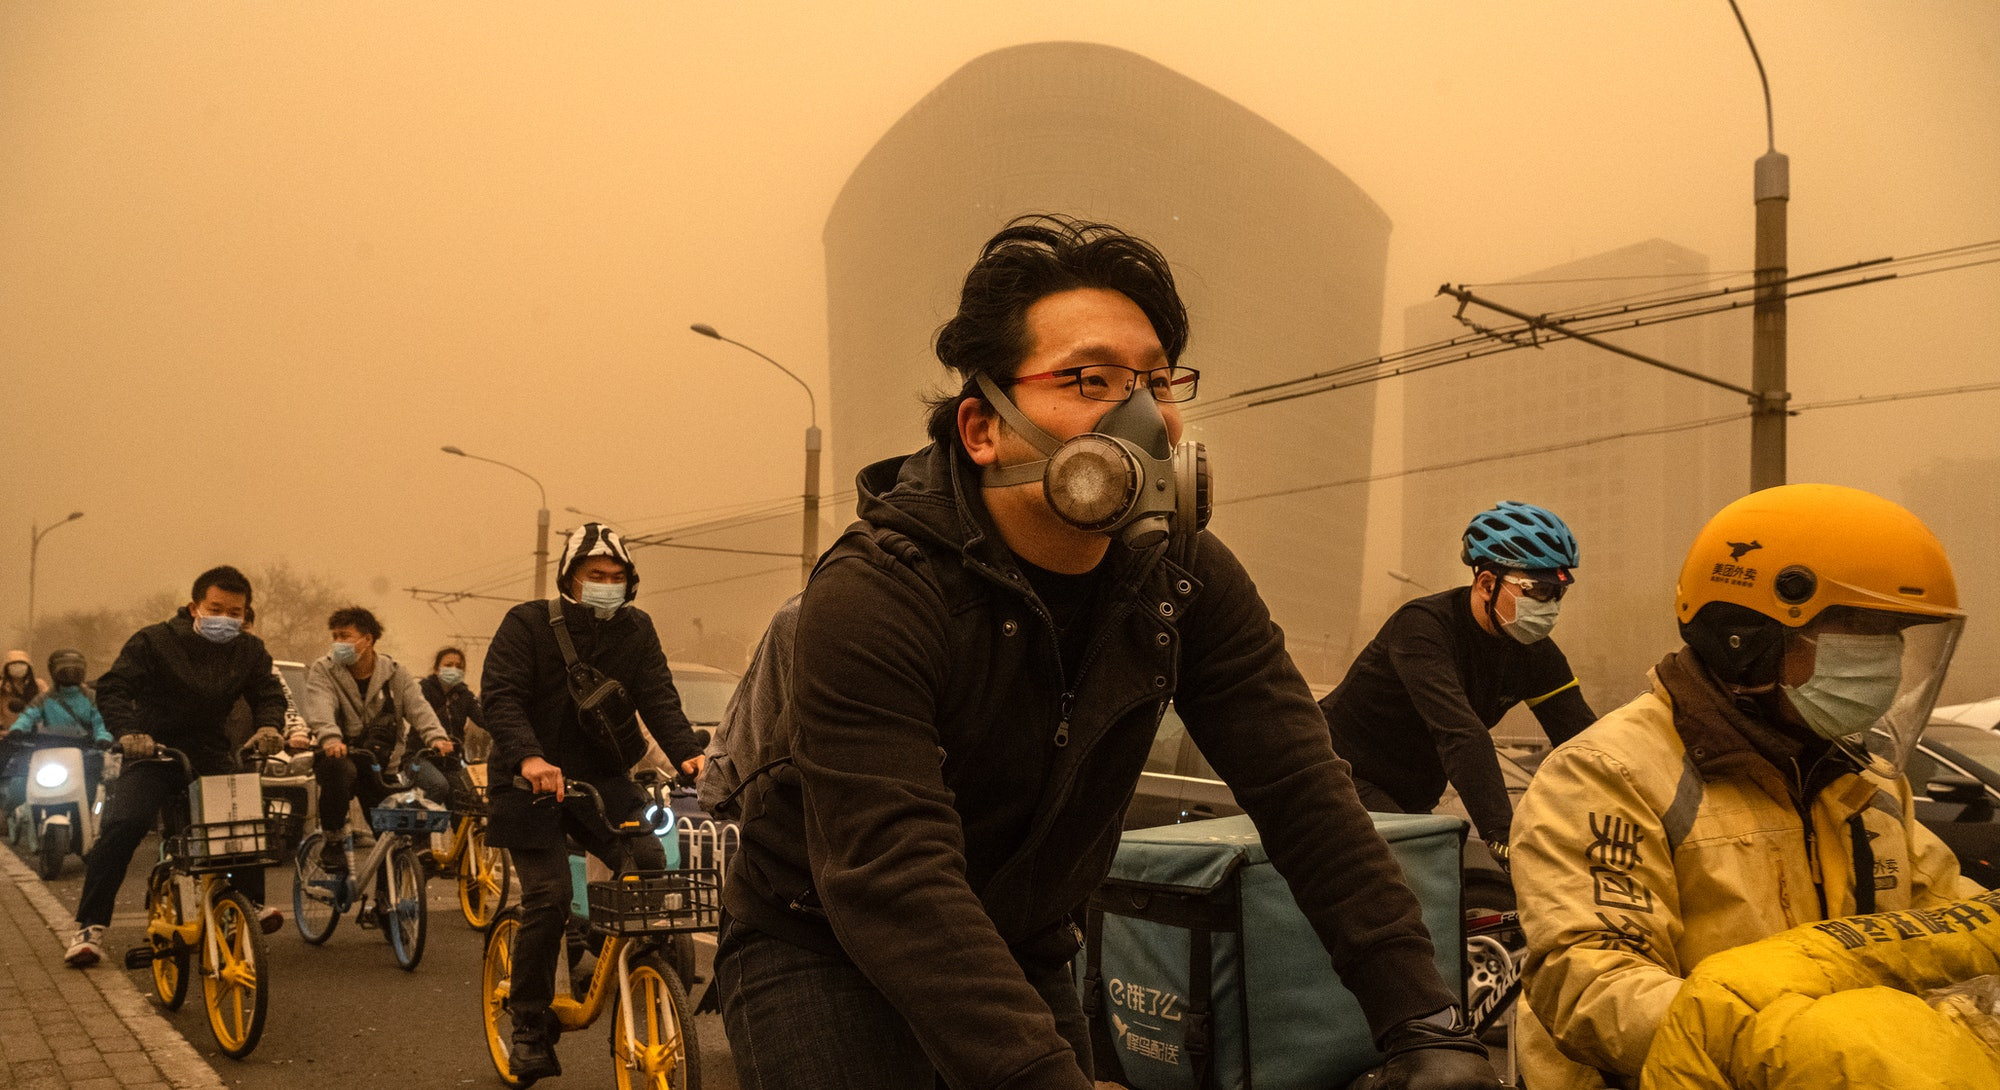 BEIJING, CHINA - MARCH 15: People wear protective masks as they commute during a sandstorm on March 15, 2021 in Beijing, China. The Chinese capital and the northern parts of the country was hit with a sandstorm on Monday, sending air quality indexes of PM 2.5 and PM 10 ratings into the thousands and cancelling flights. (Photo by Kevin Frayer/Getty Images)